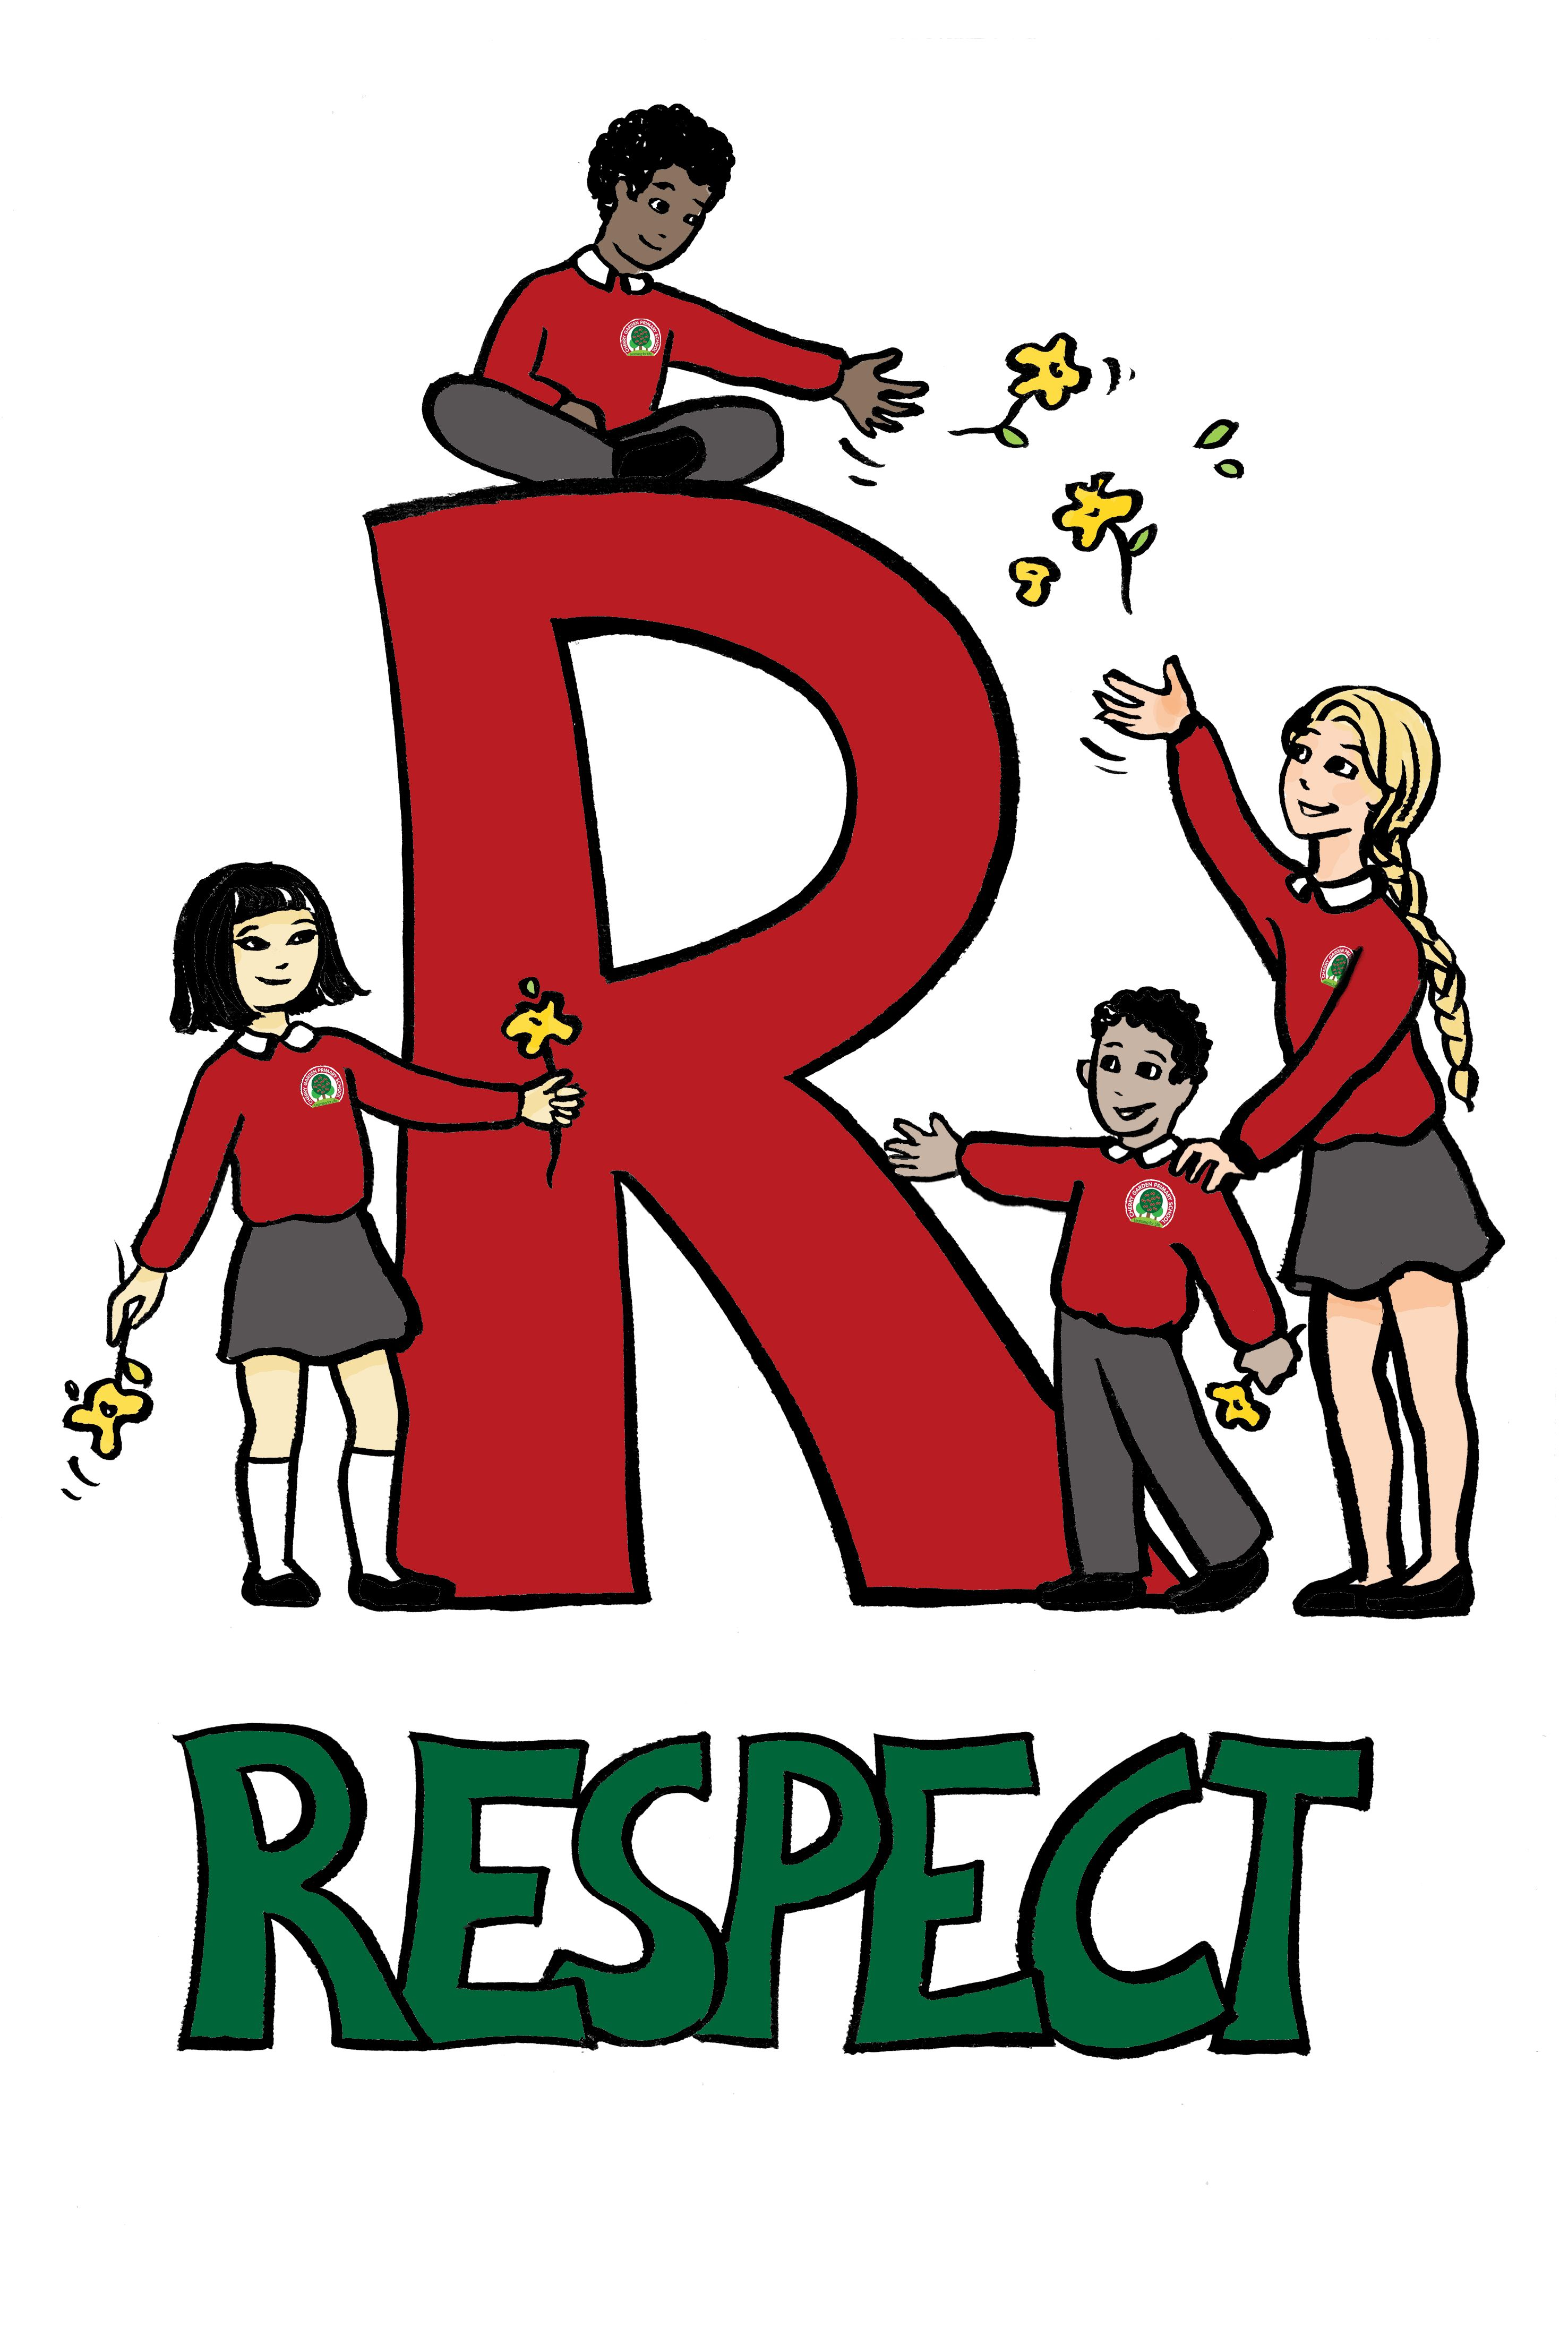 Showing Respect Clipart